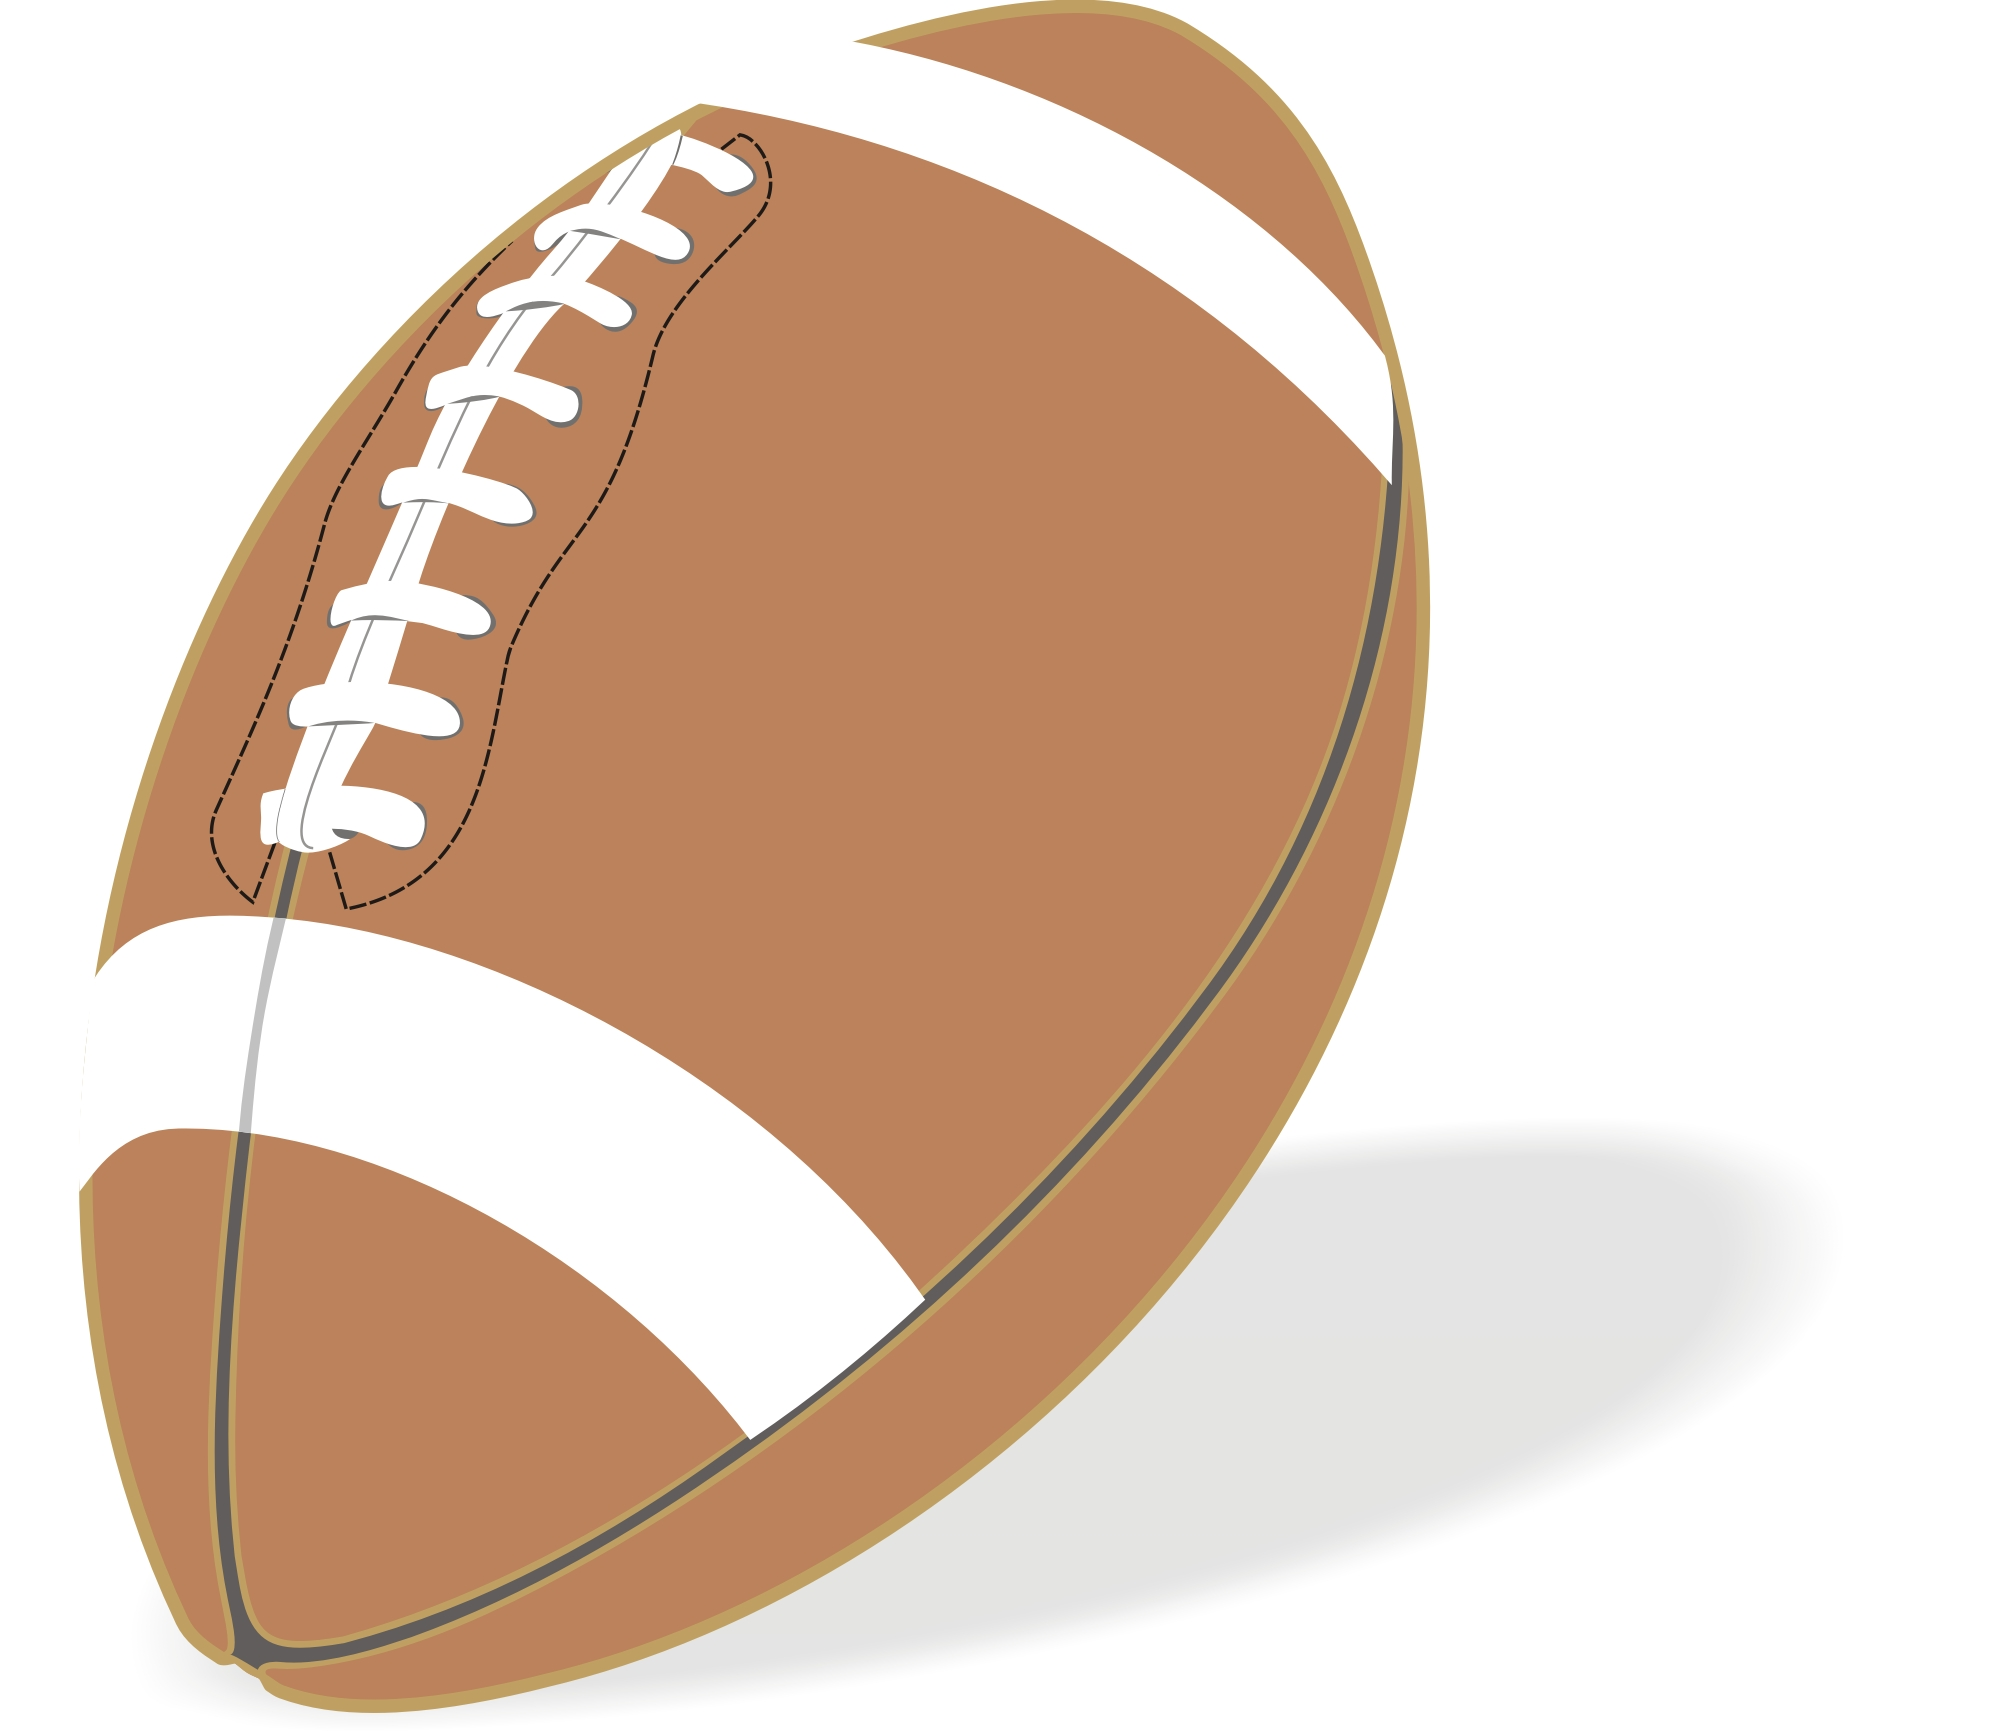 Football Free Images At Clker Com Vector Clip Art Online Royalty